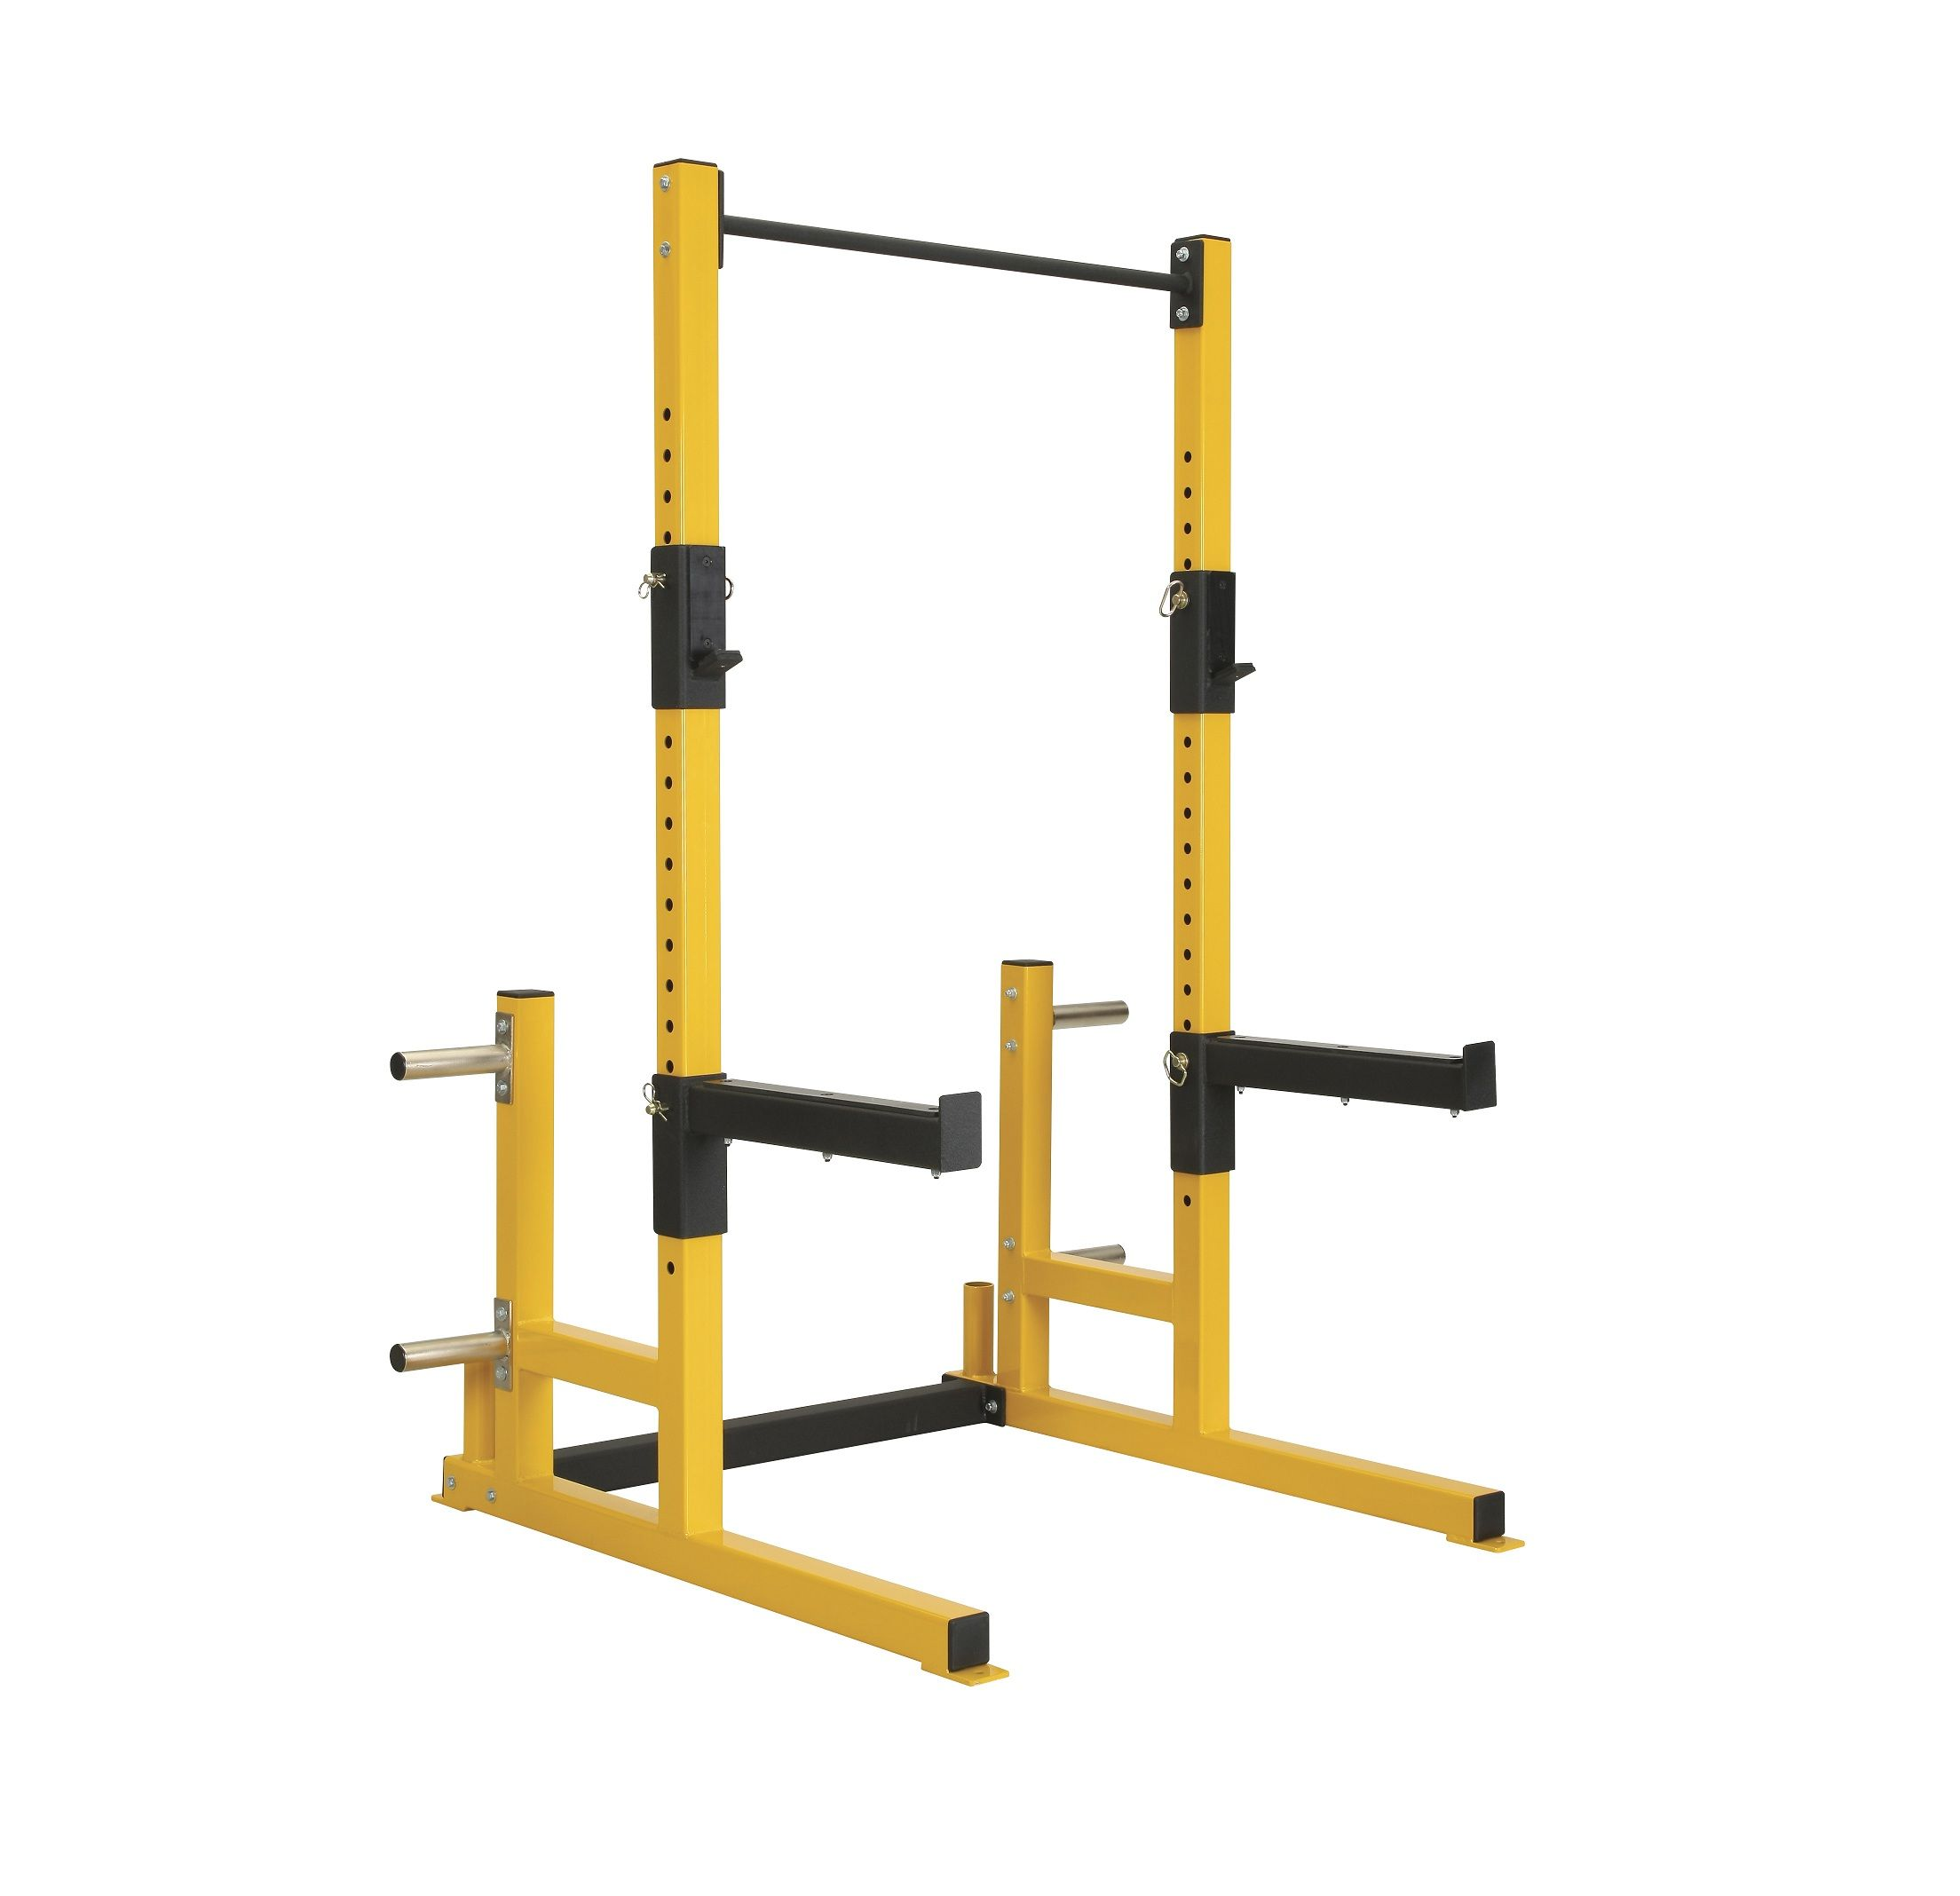 Op 3 Squat Rack System With Pull Up Bar Yellow Jpg 2208 2136 Squat Rack Squats Homemade Gym Equipment